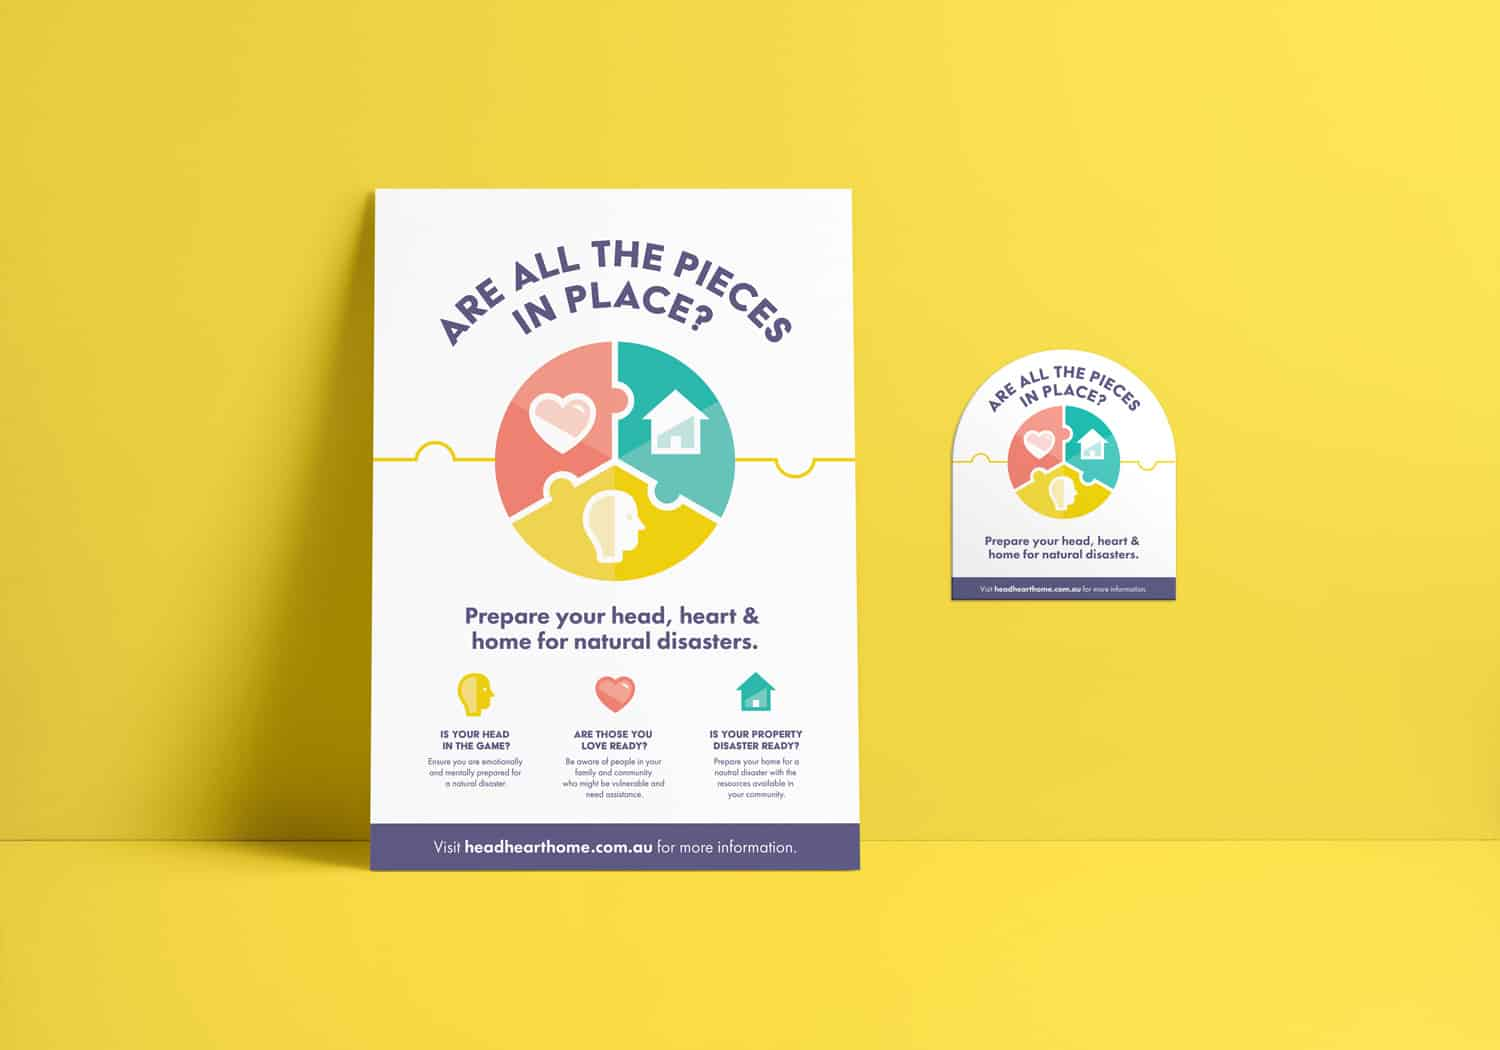 Head Heart Home disaster awareness campaign poster and magnet for Central Queensland University by Flux Visual Communication